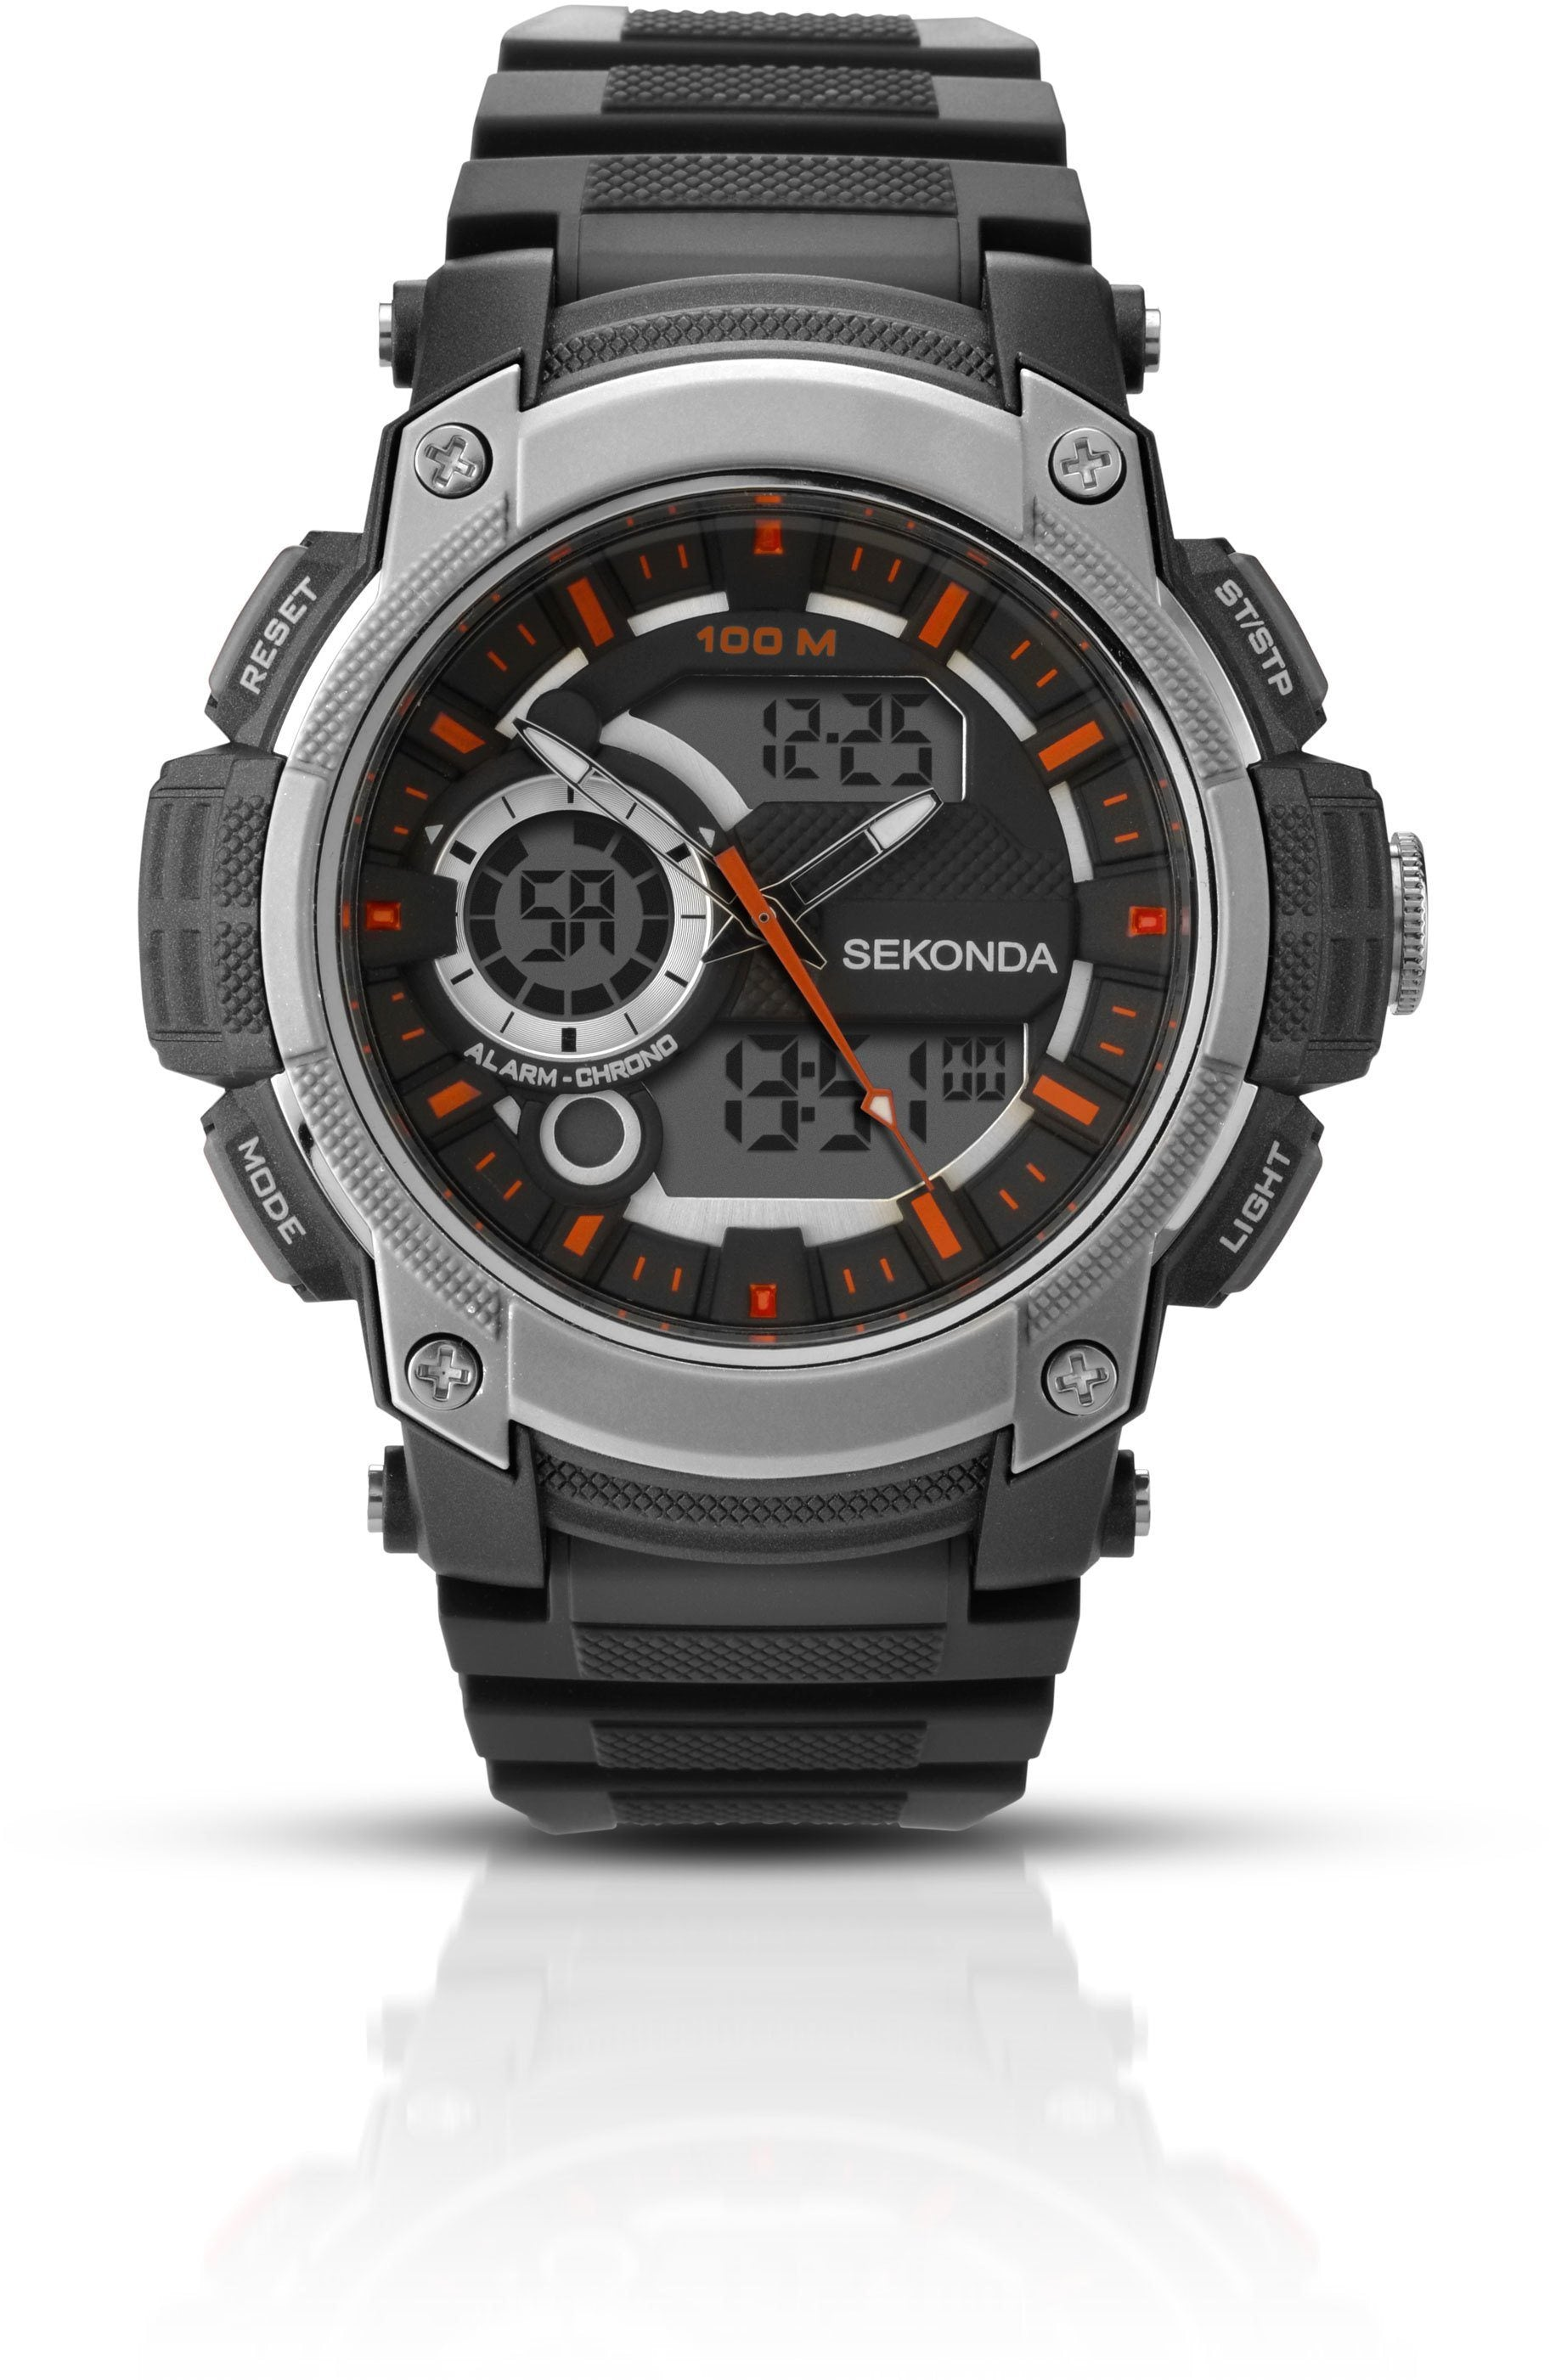 Mens Digital Sekonda watch in black plastic with silver-grey case and orange highlights.